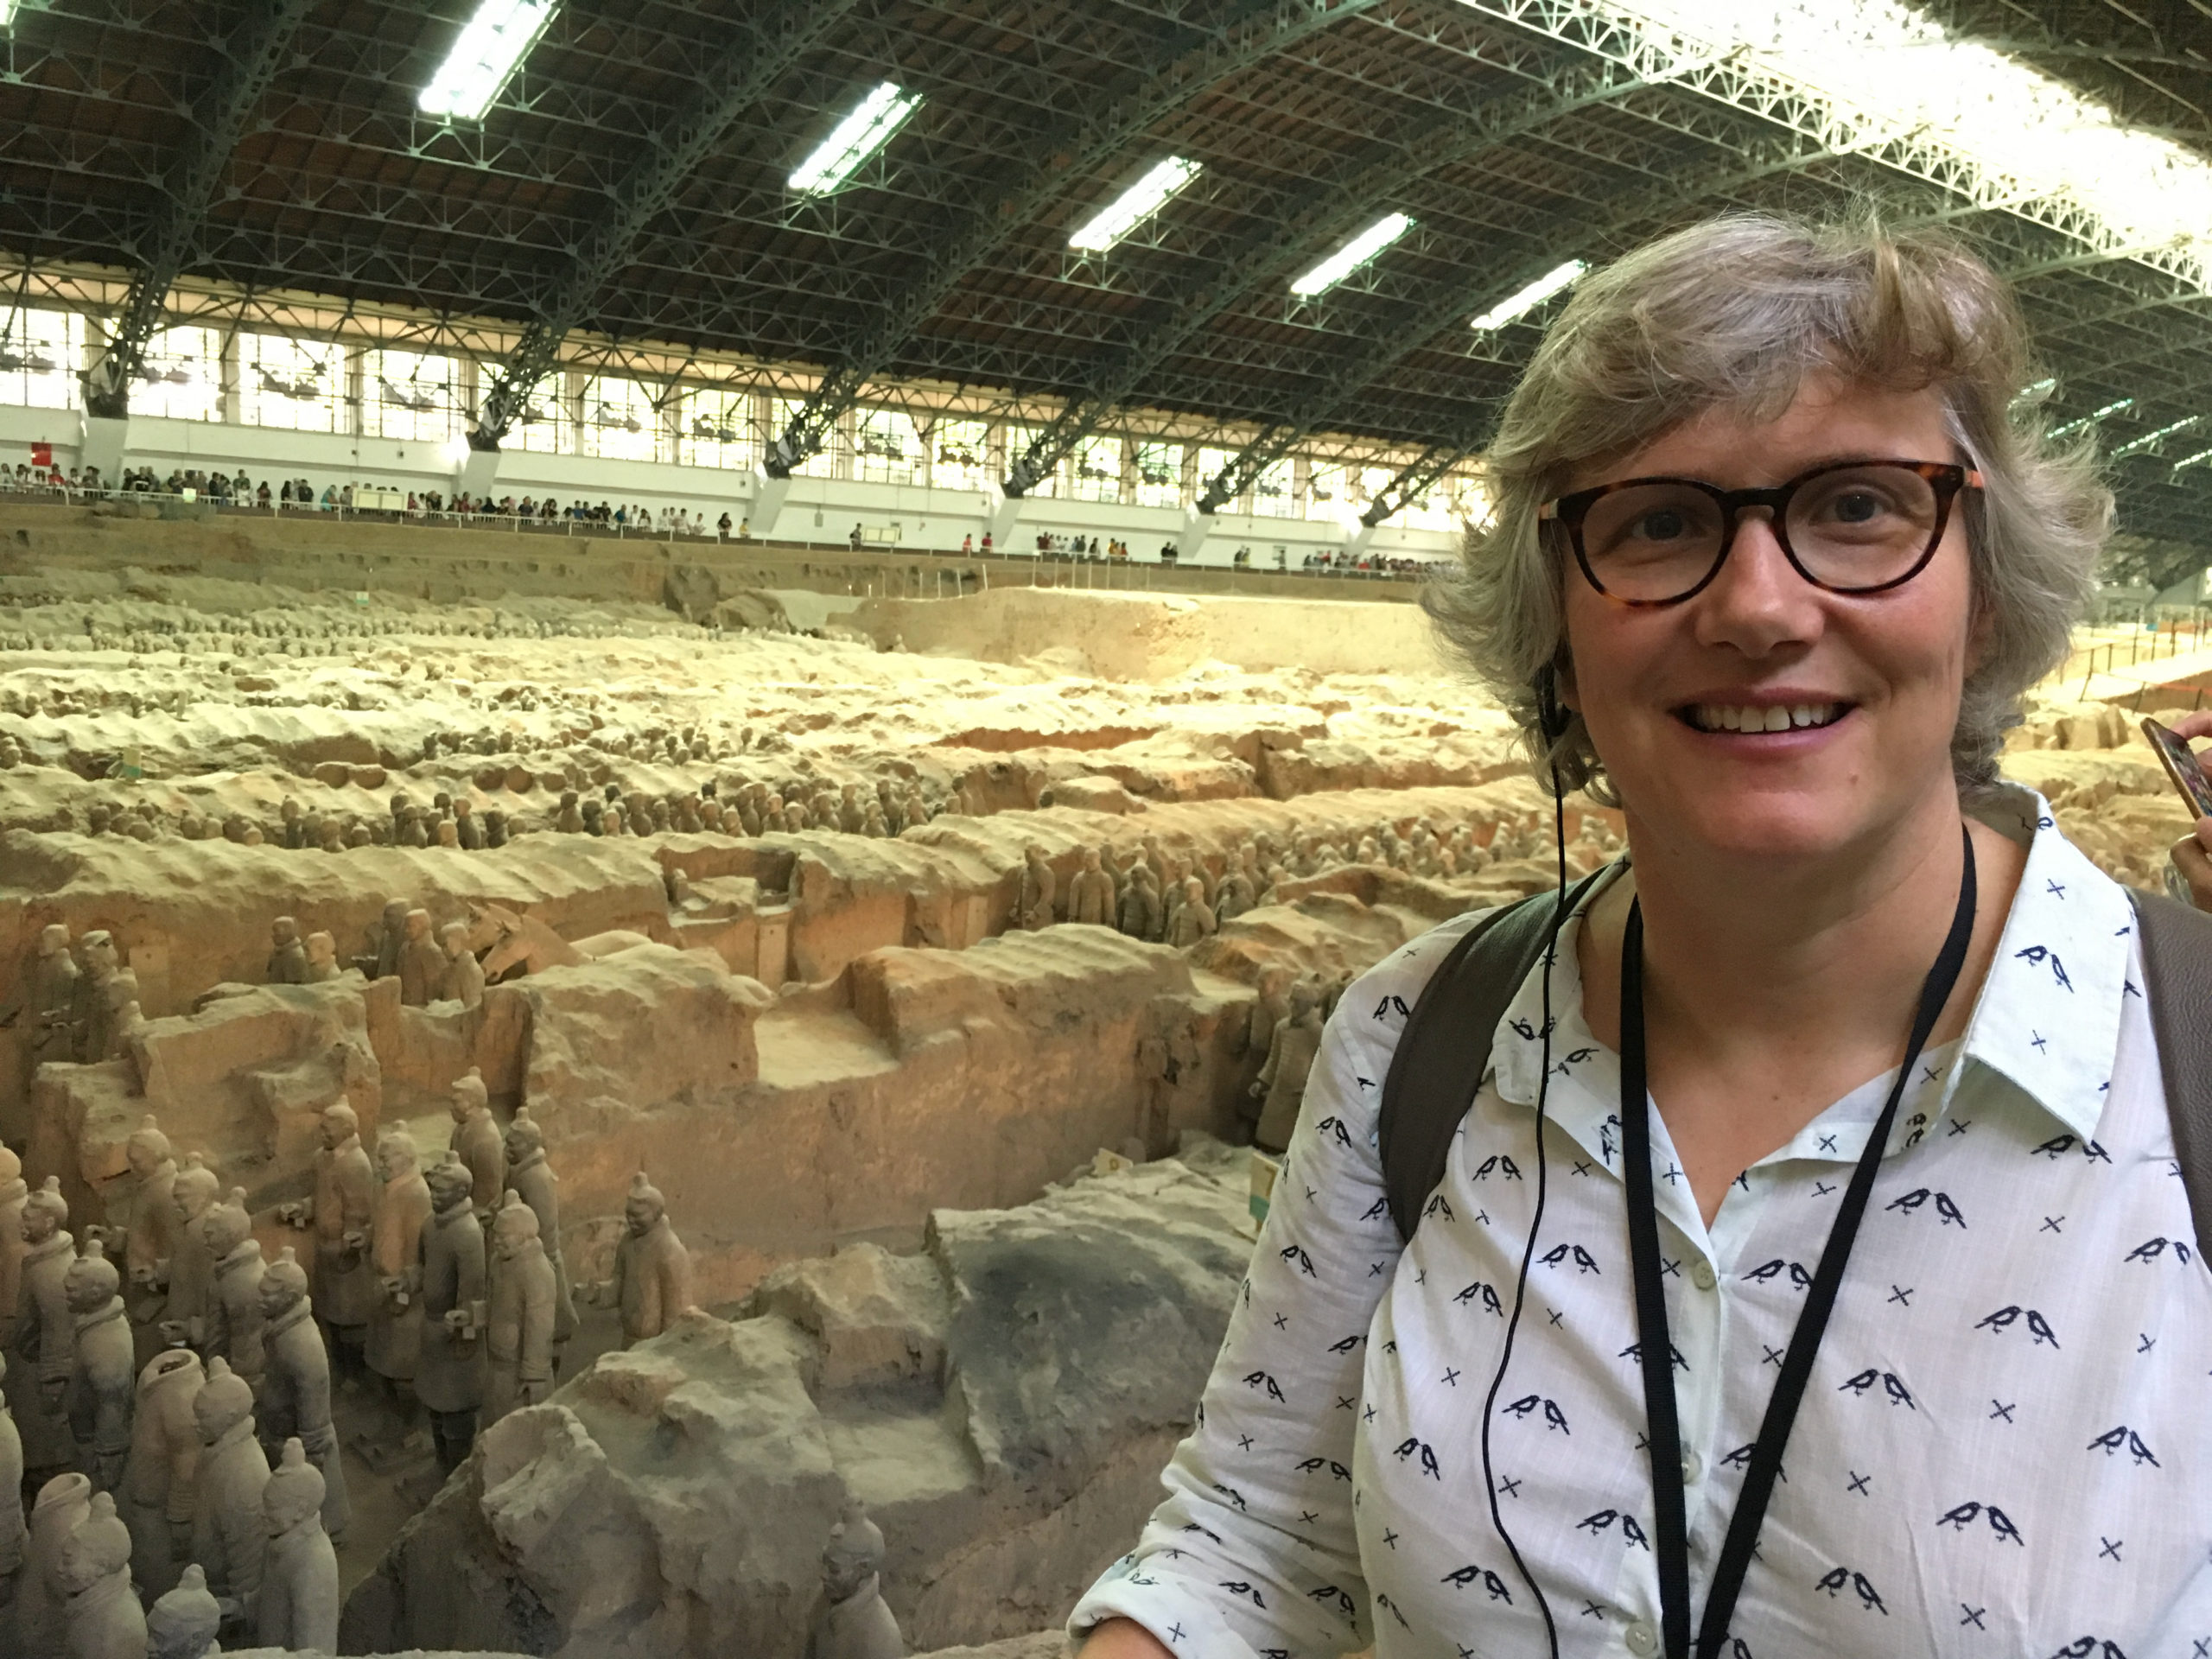 View of the Terracota Army Museum, Xi'an